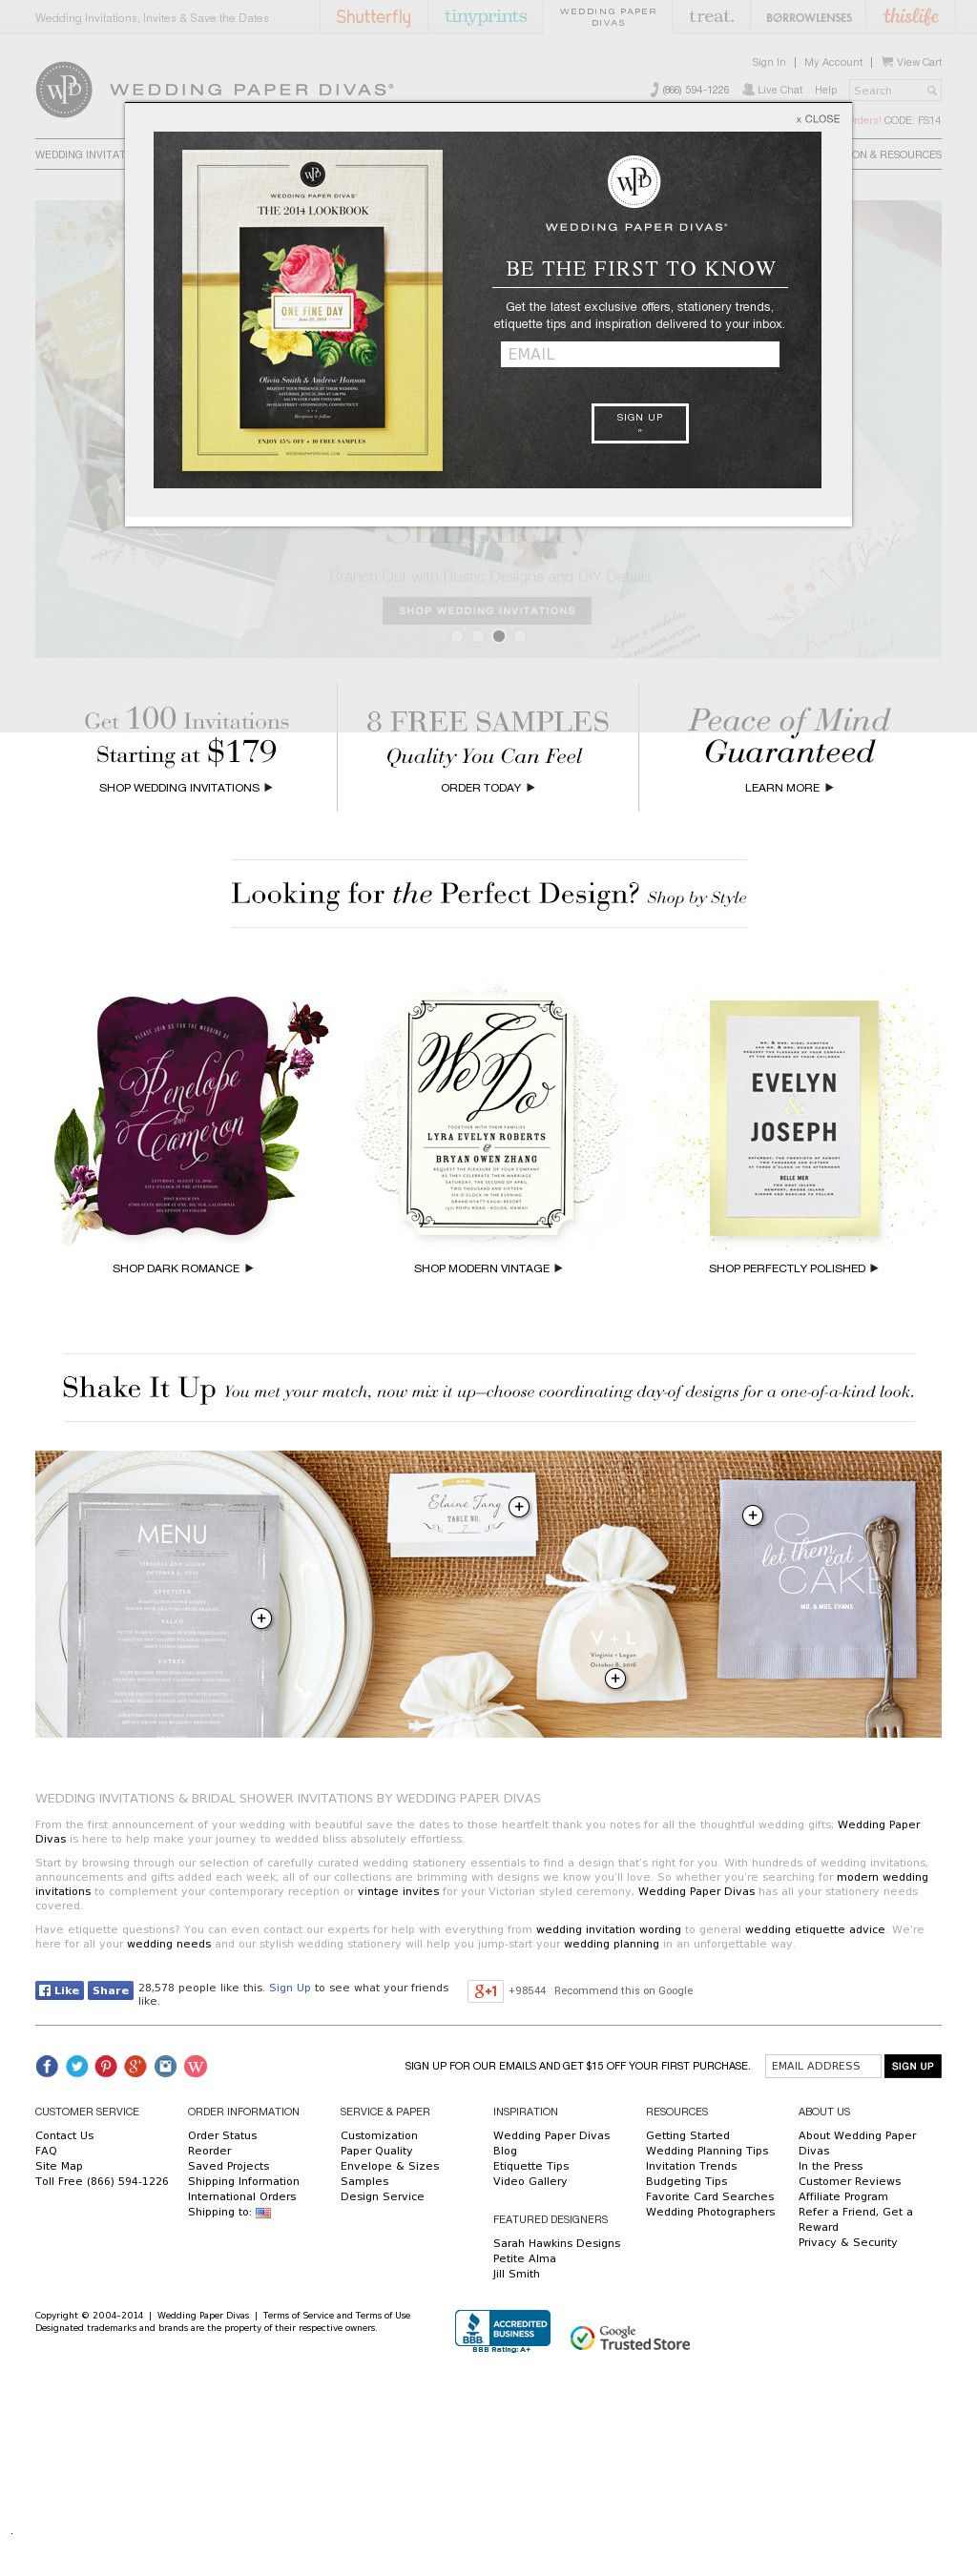 Wedding Paper Divas Website Paper Diva Wedding Wedding Paper Divas Paper Divas Wedding Paper